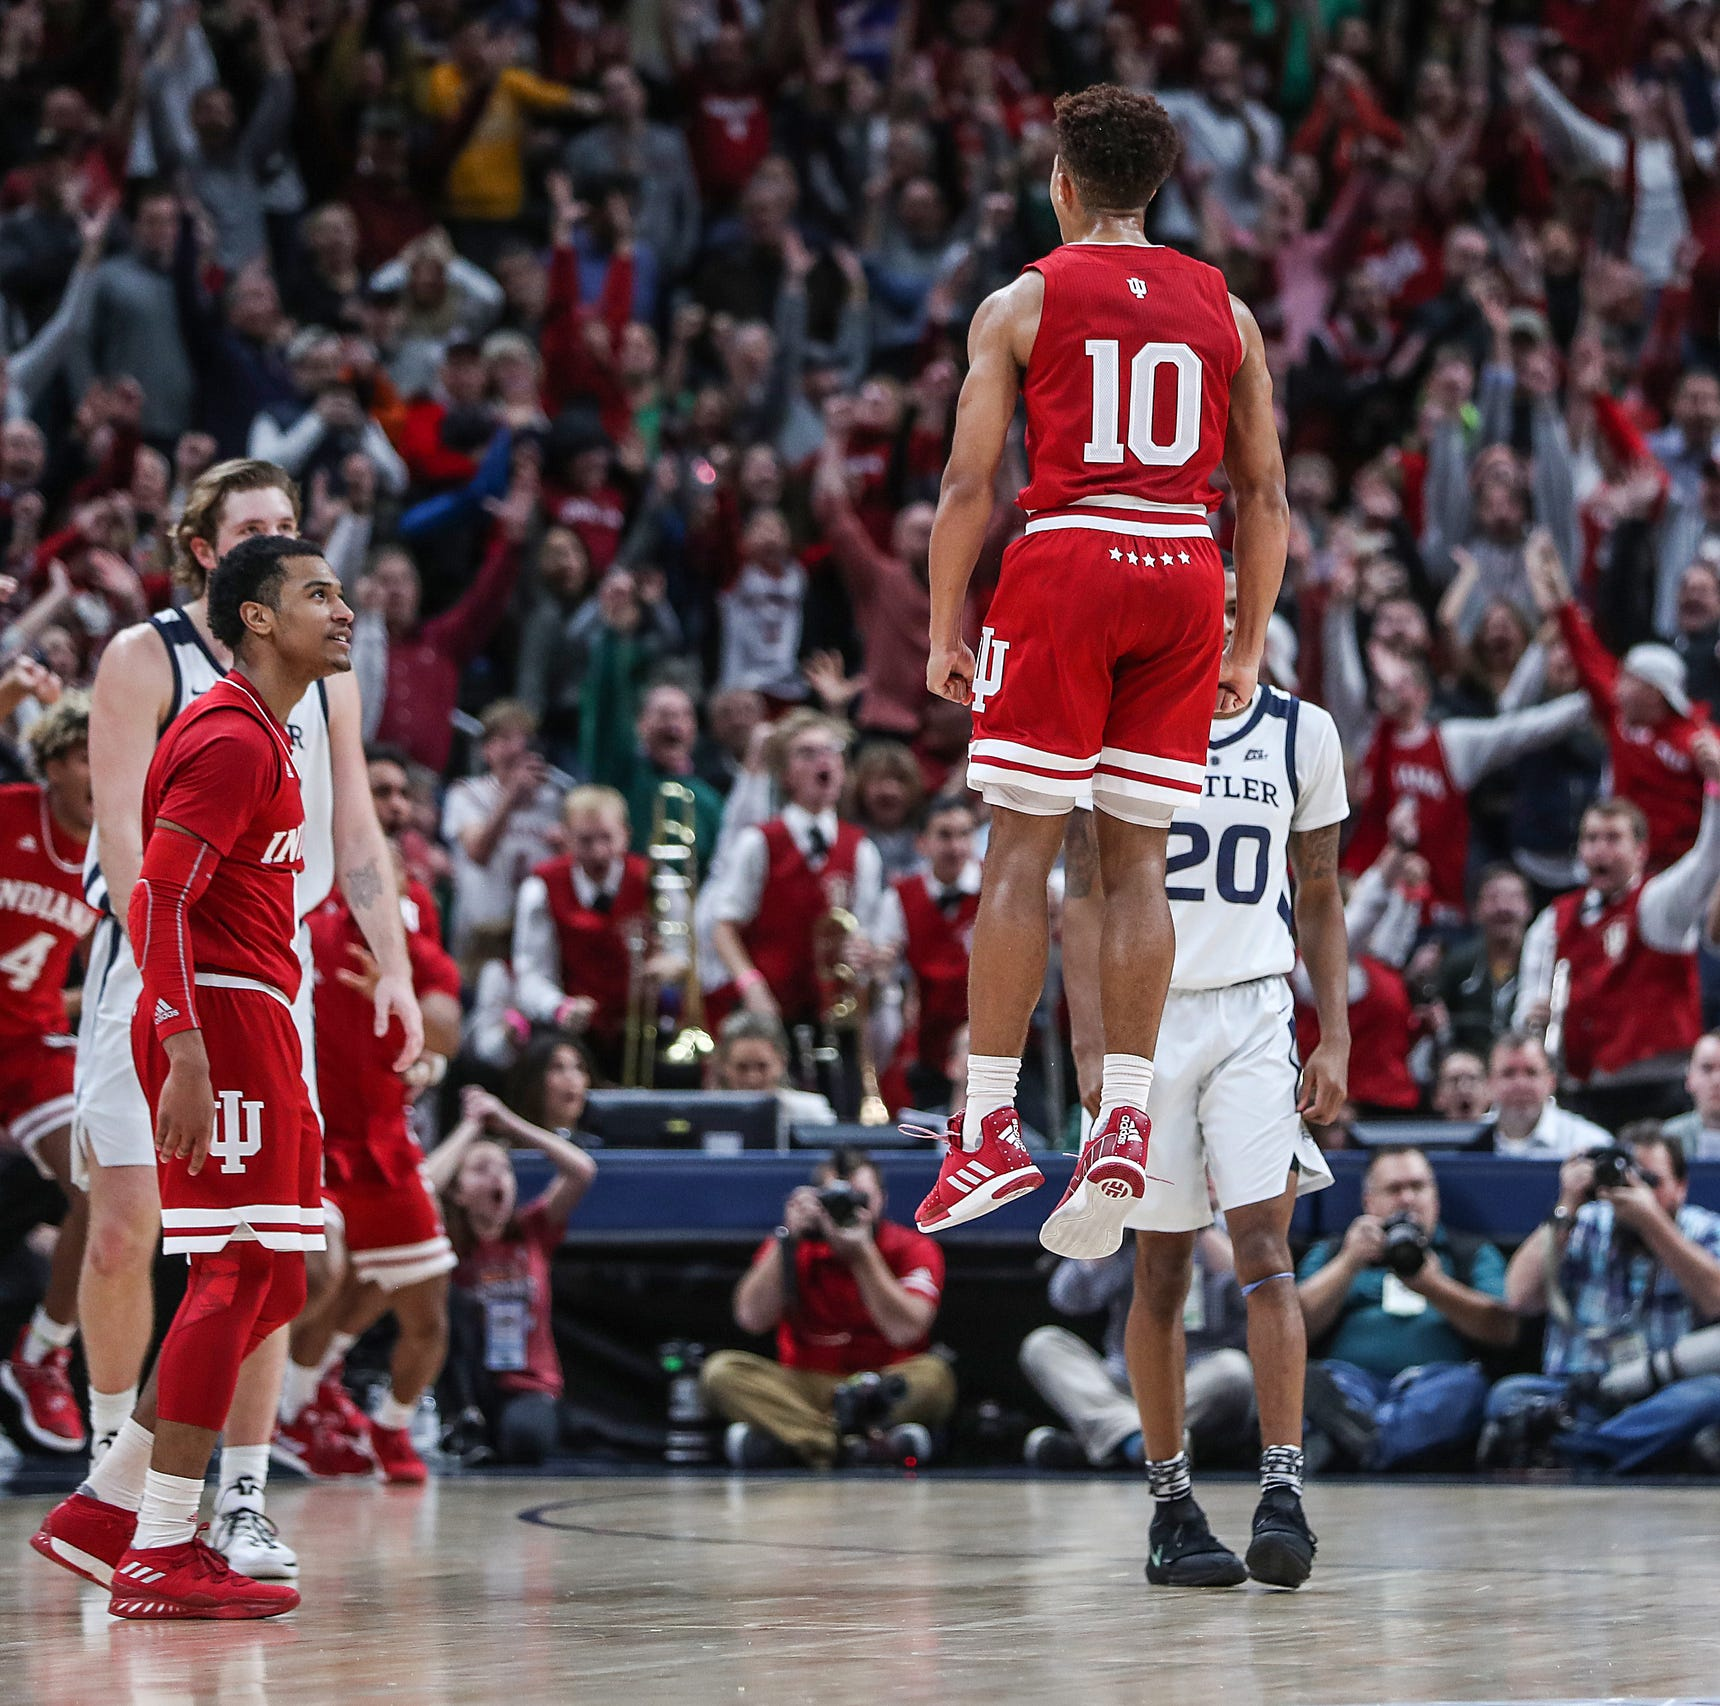 Twitter reacts to Rob Phinisee's buzzer-beater to help IU basketball beat Butler